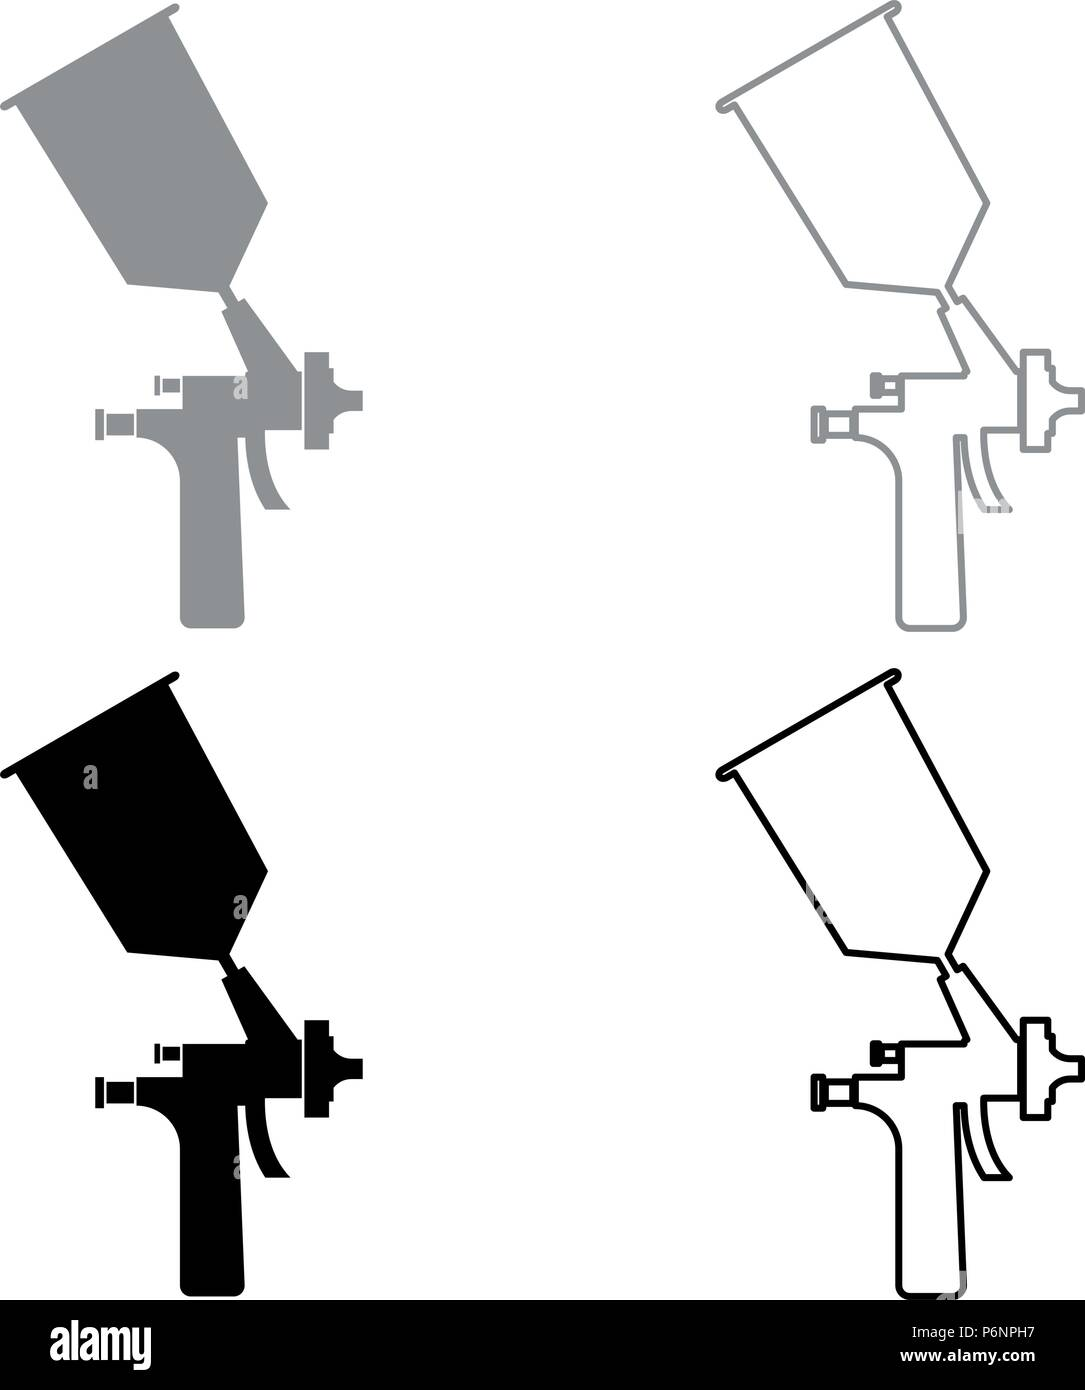 Sprayer paint icon set grey black color I flat style simple image - Stock Image